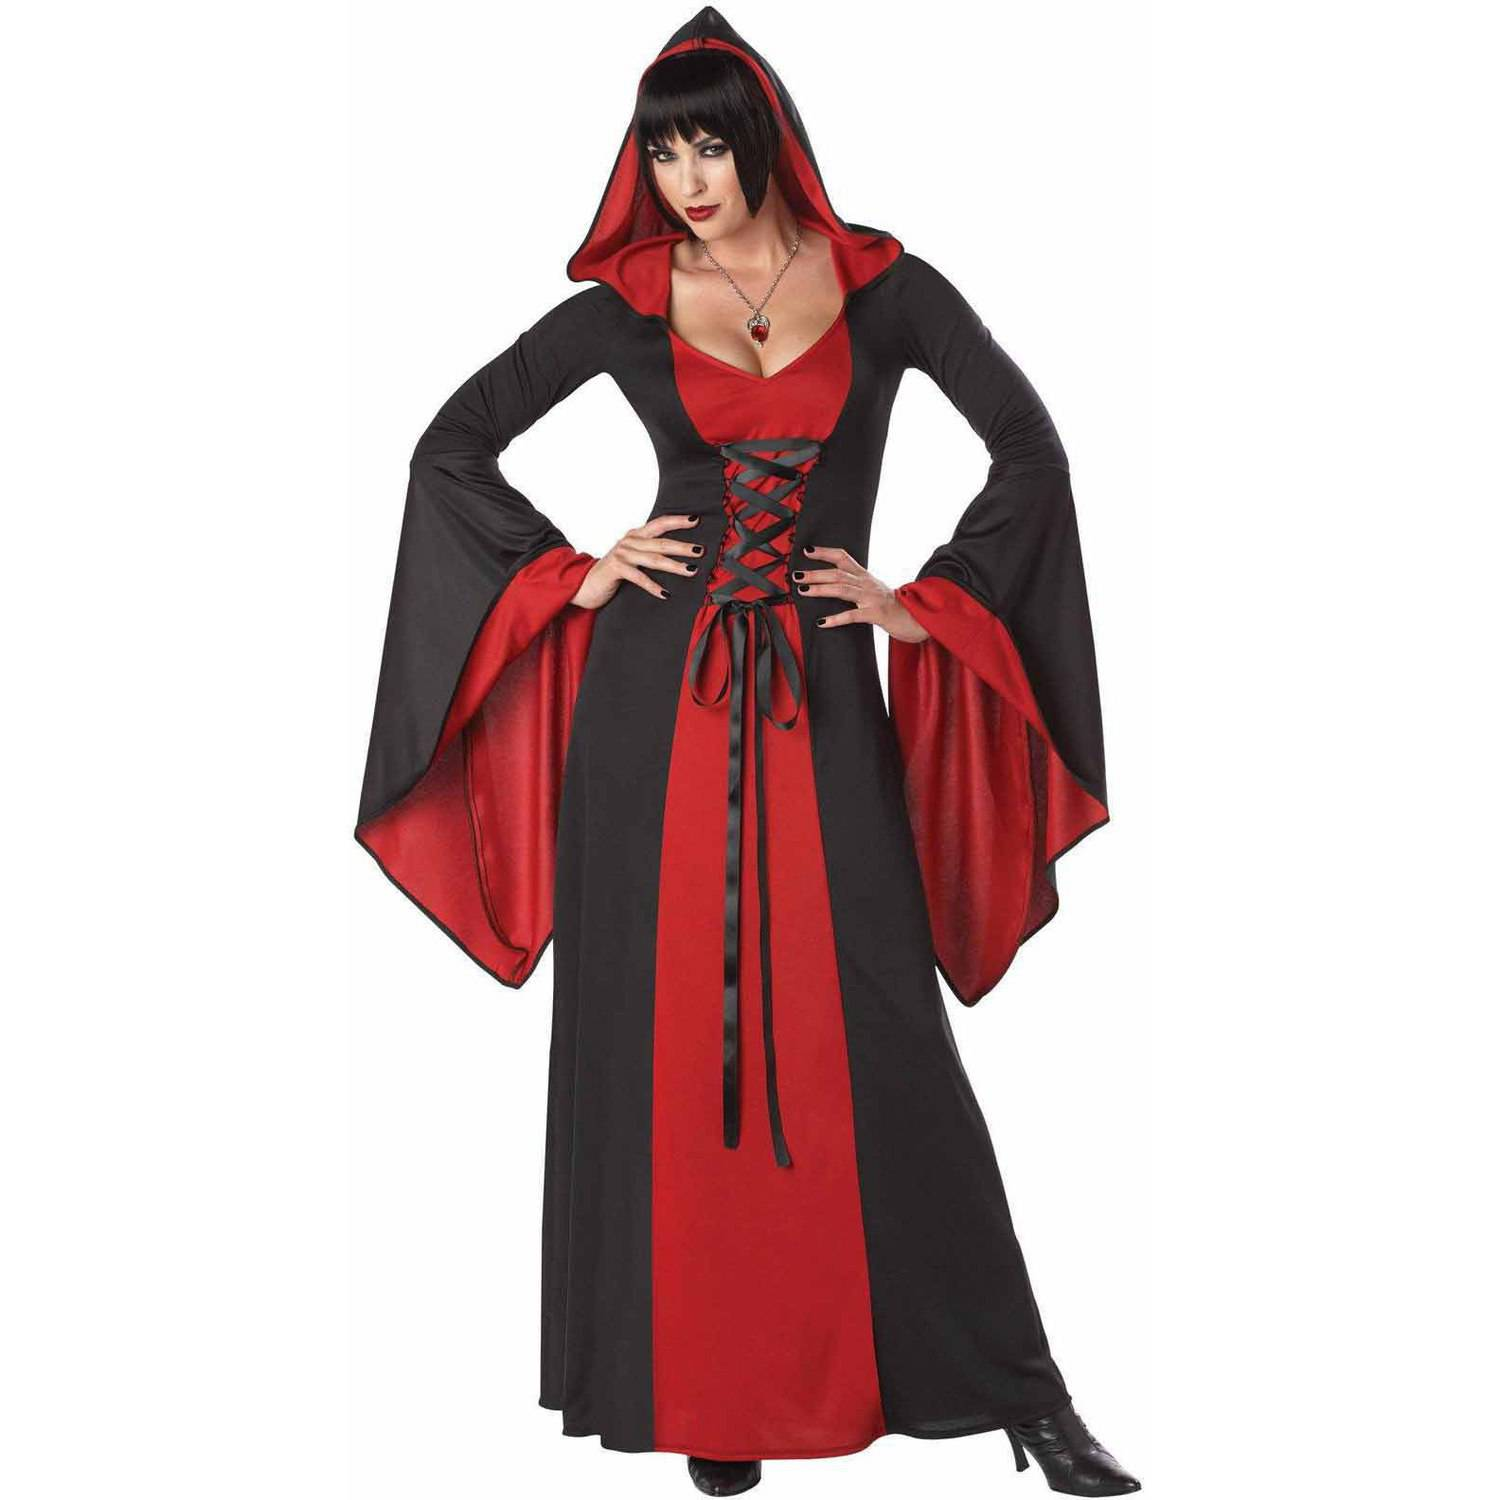 Red and Black Deluxe Hooded Robe Men's Adult Halloween Costume